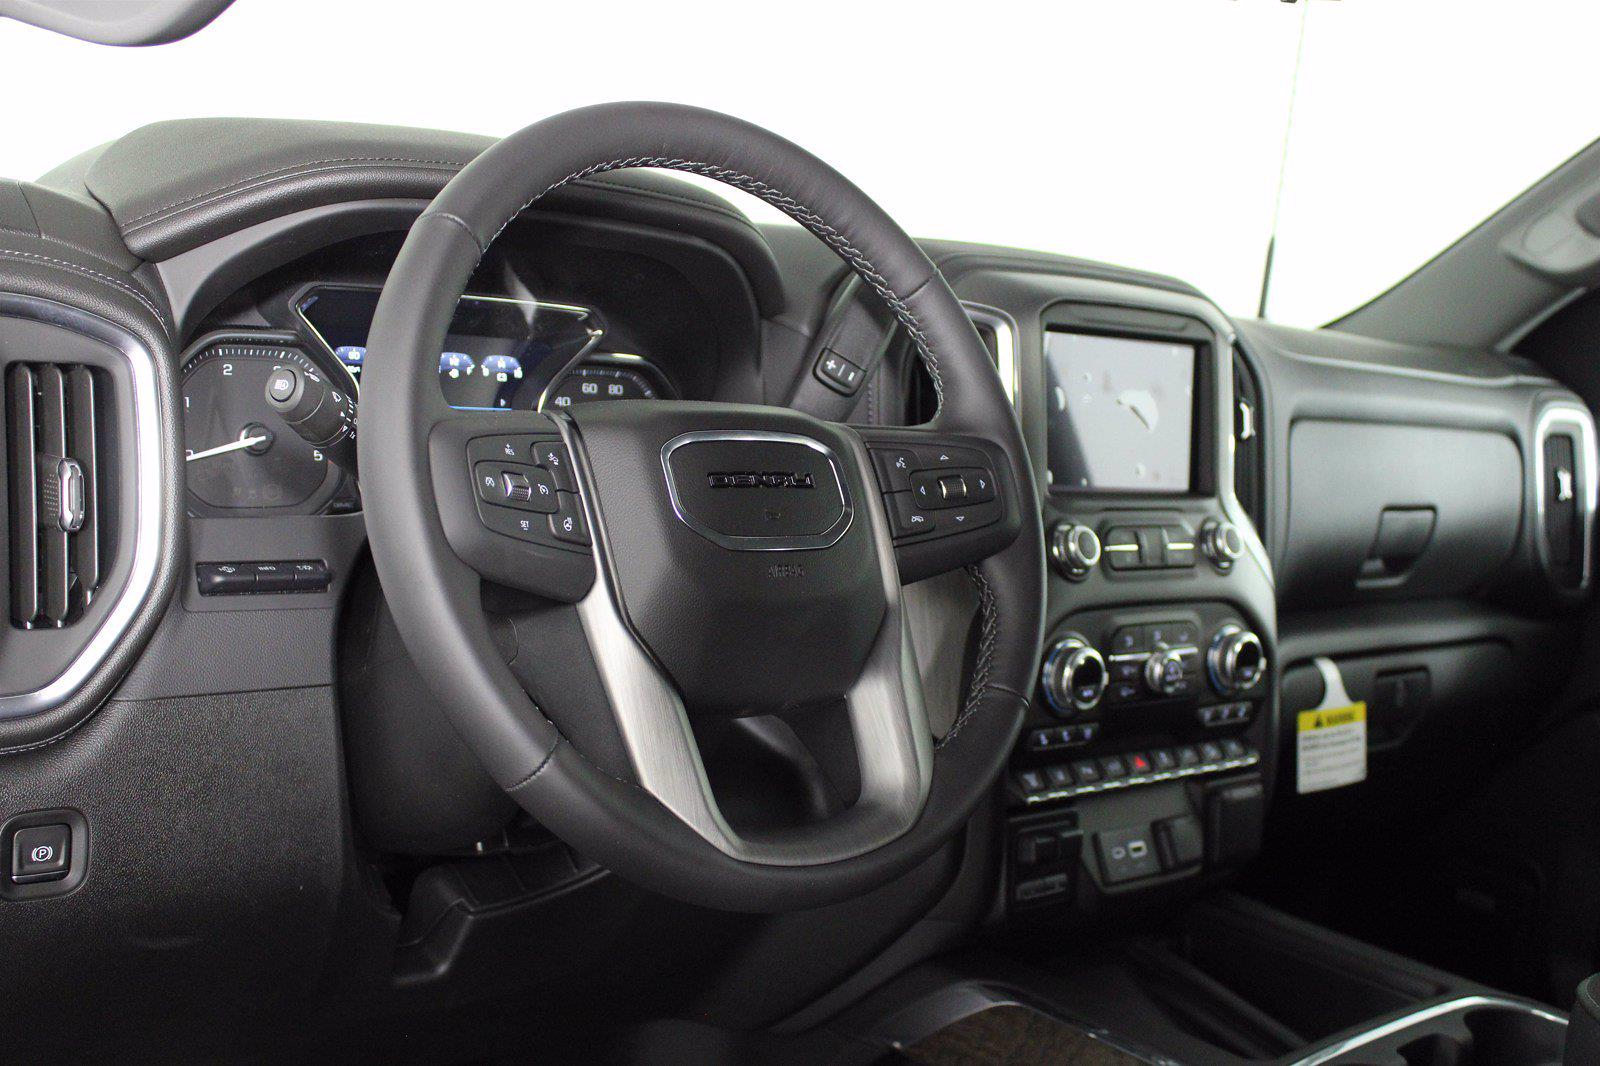 2021 GMC Sierra 2500 Crew Cab 4x4, Pickup #D410852 - photo 10